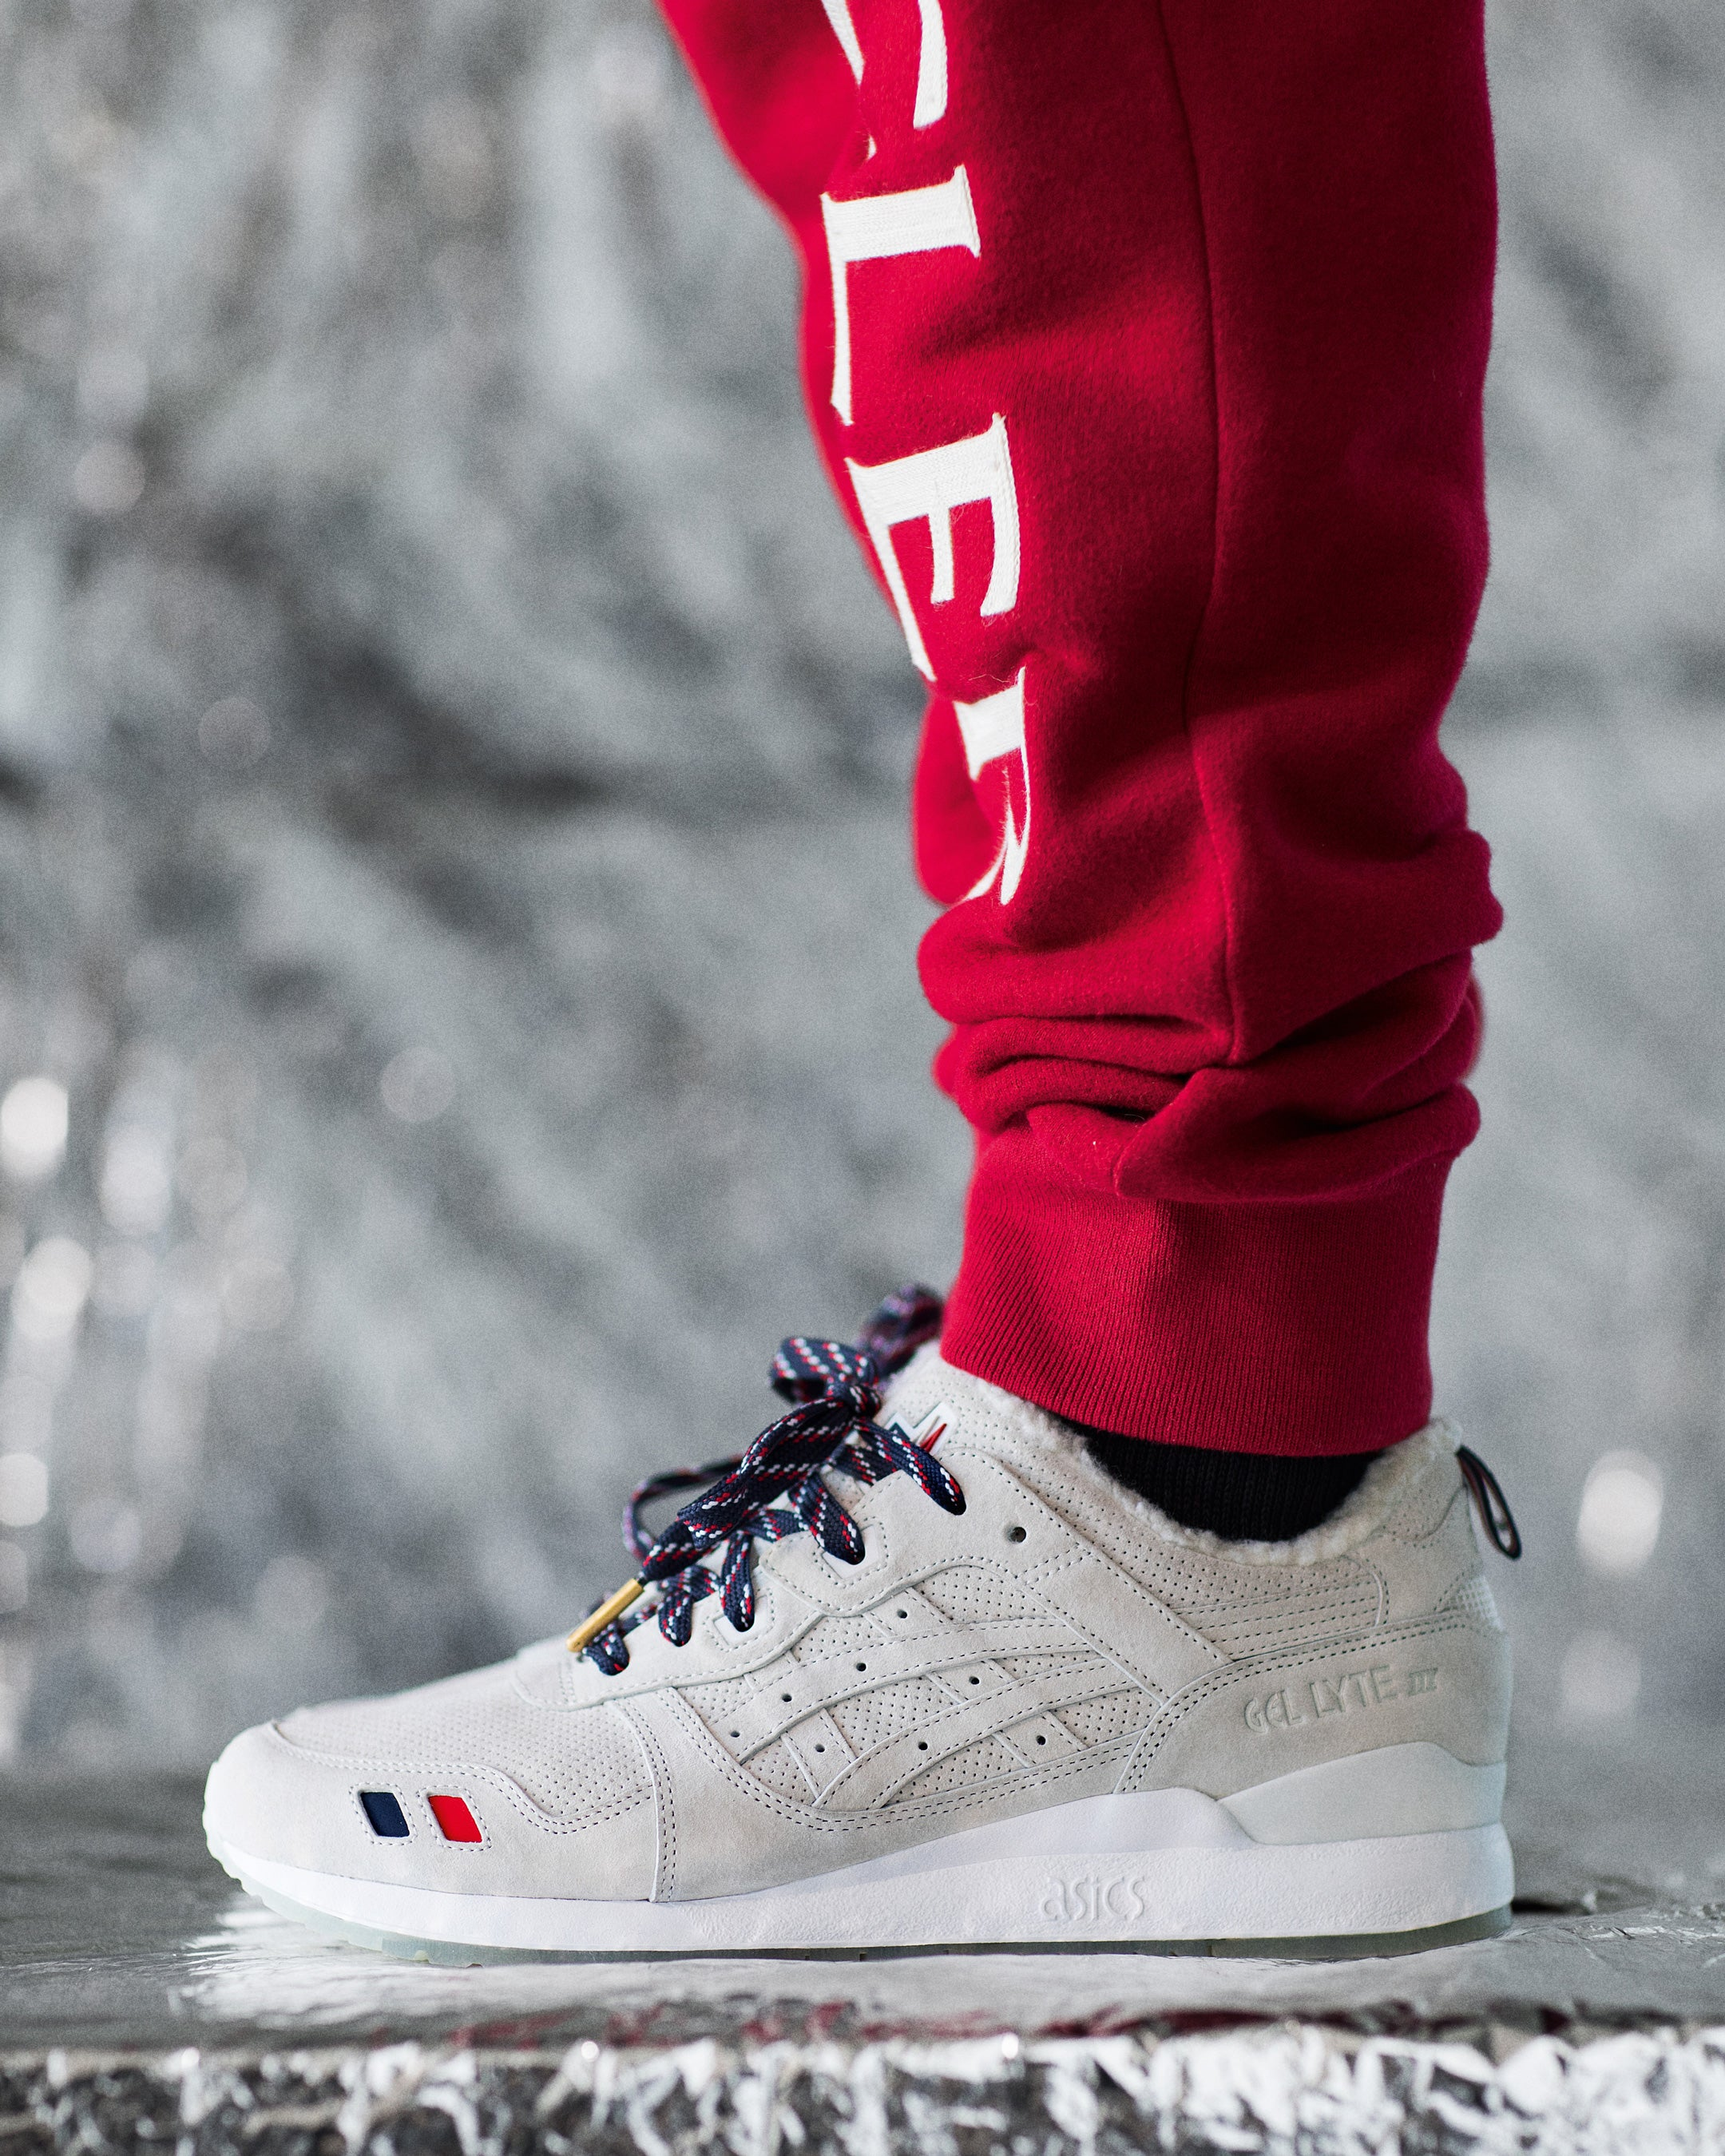 check out f8875 444ab the new Kith x Moncler x Asics Gel Lyte IIIs. releasing in 3 ...